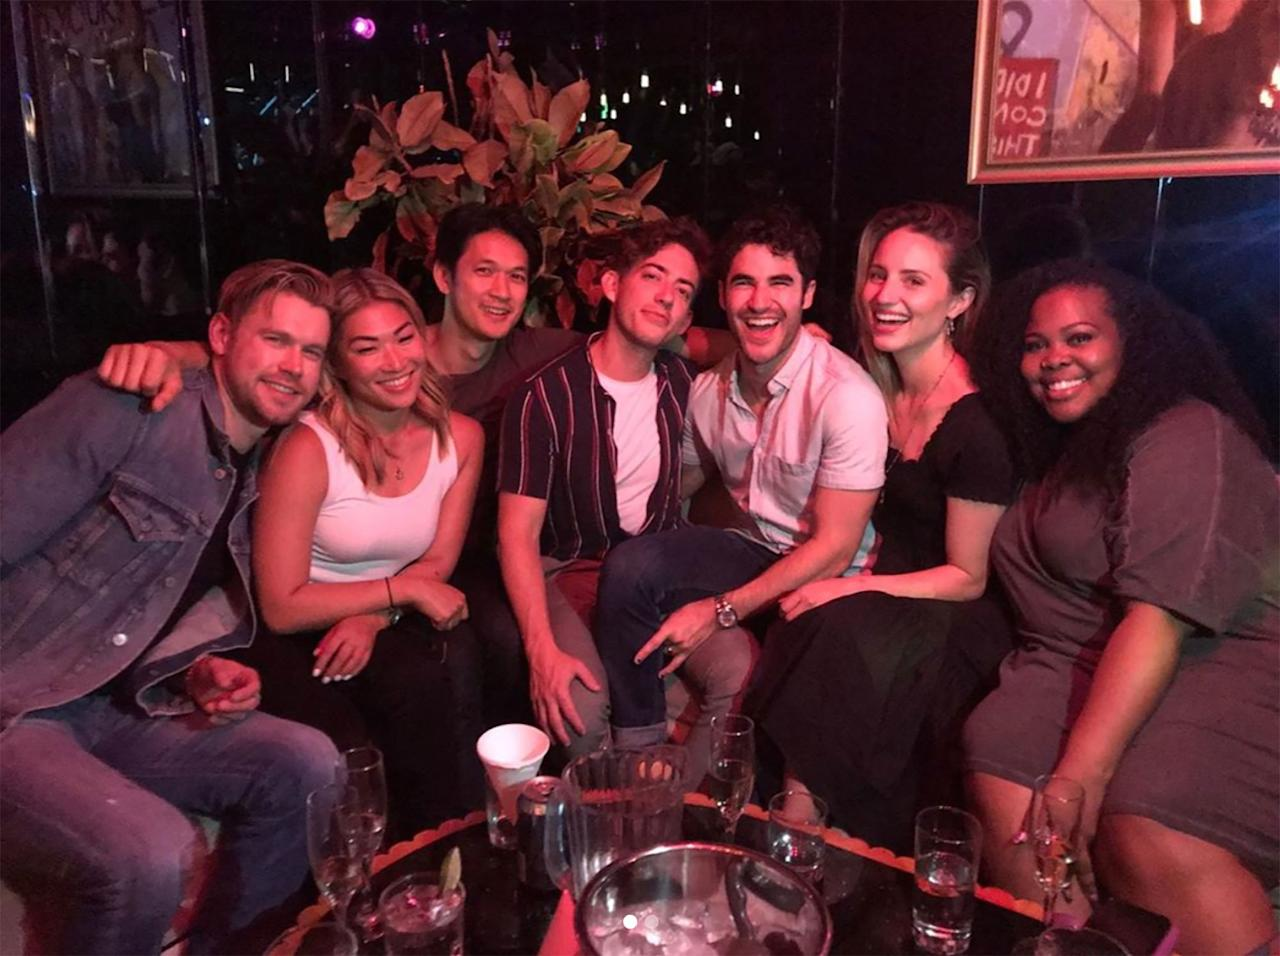 Chord Overstreet, Jenna Ushkowitz, Harry Shum Jr., Kevin McHale, Darren Criss, Dianna Agron and Amber Riley all got together recently.